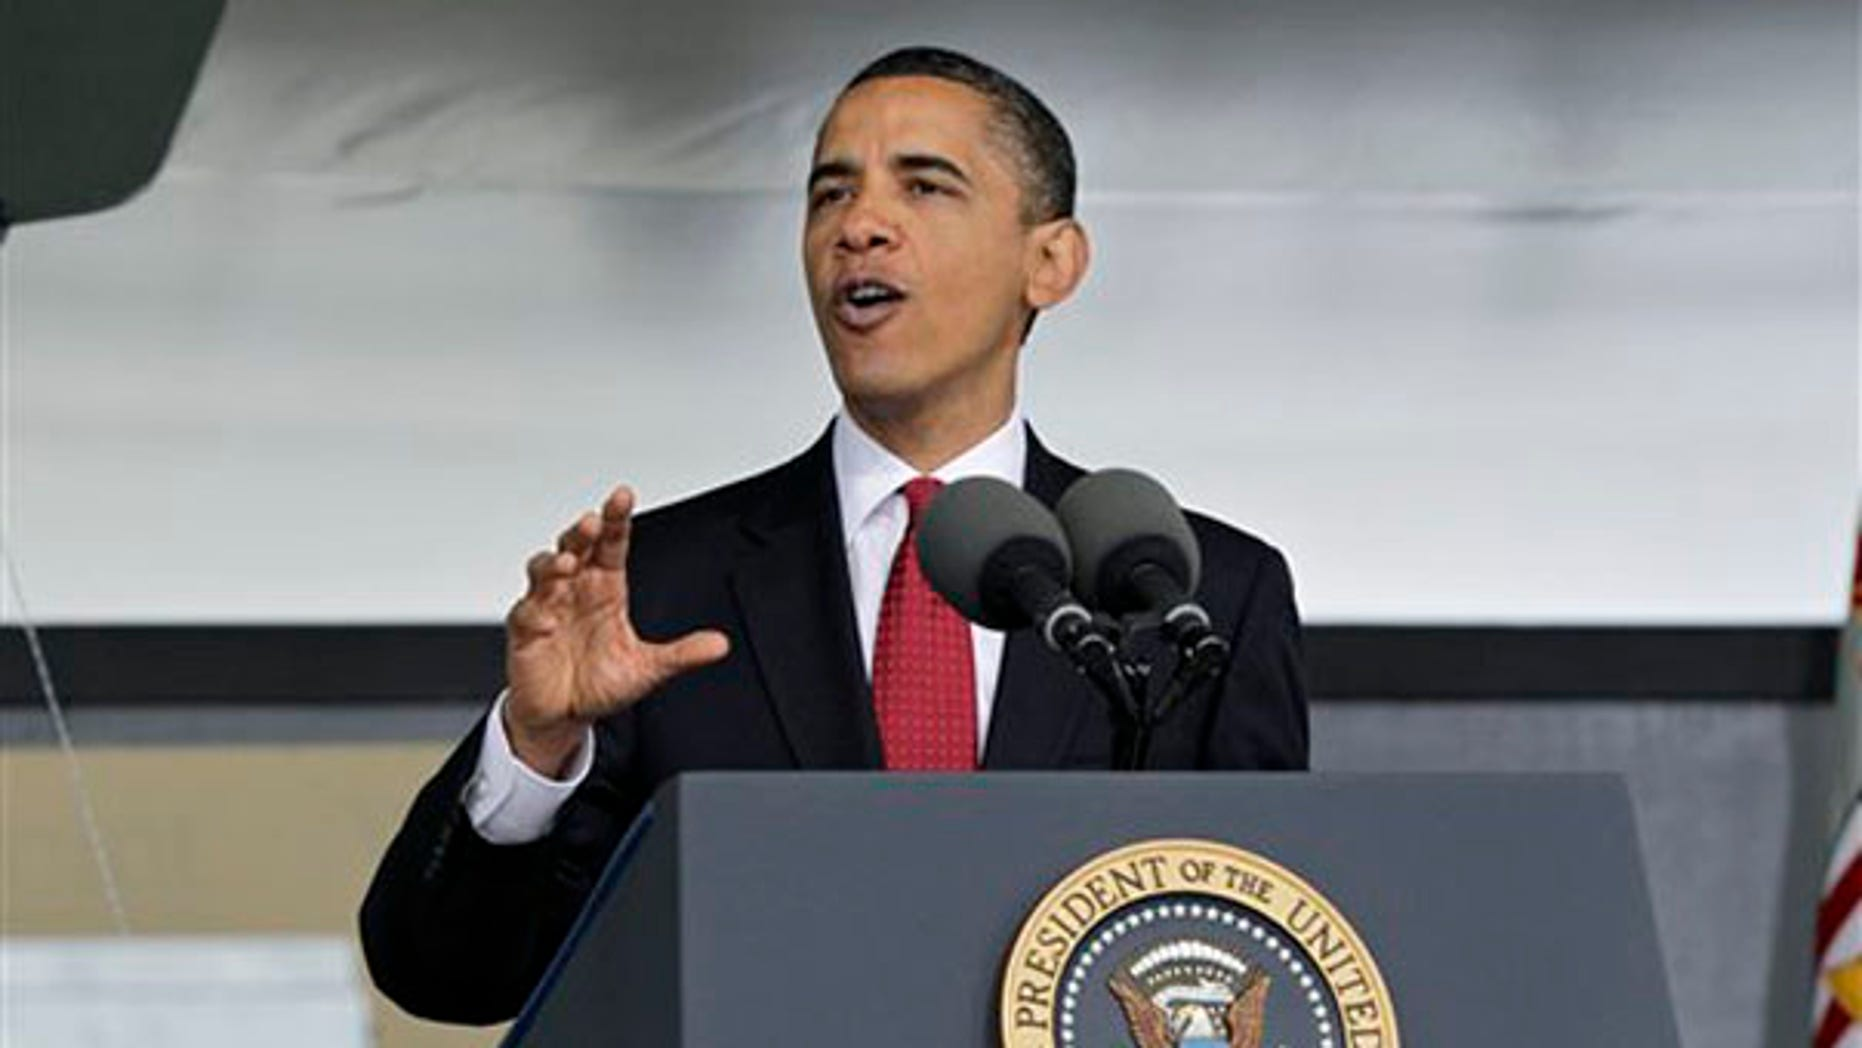 President Obama addresses the graduates of the U.S. Military Academy in West Point, N.Y., May 22. (AP Photo)